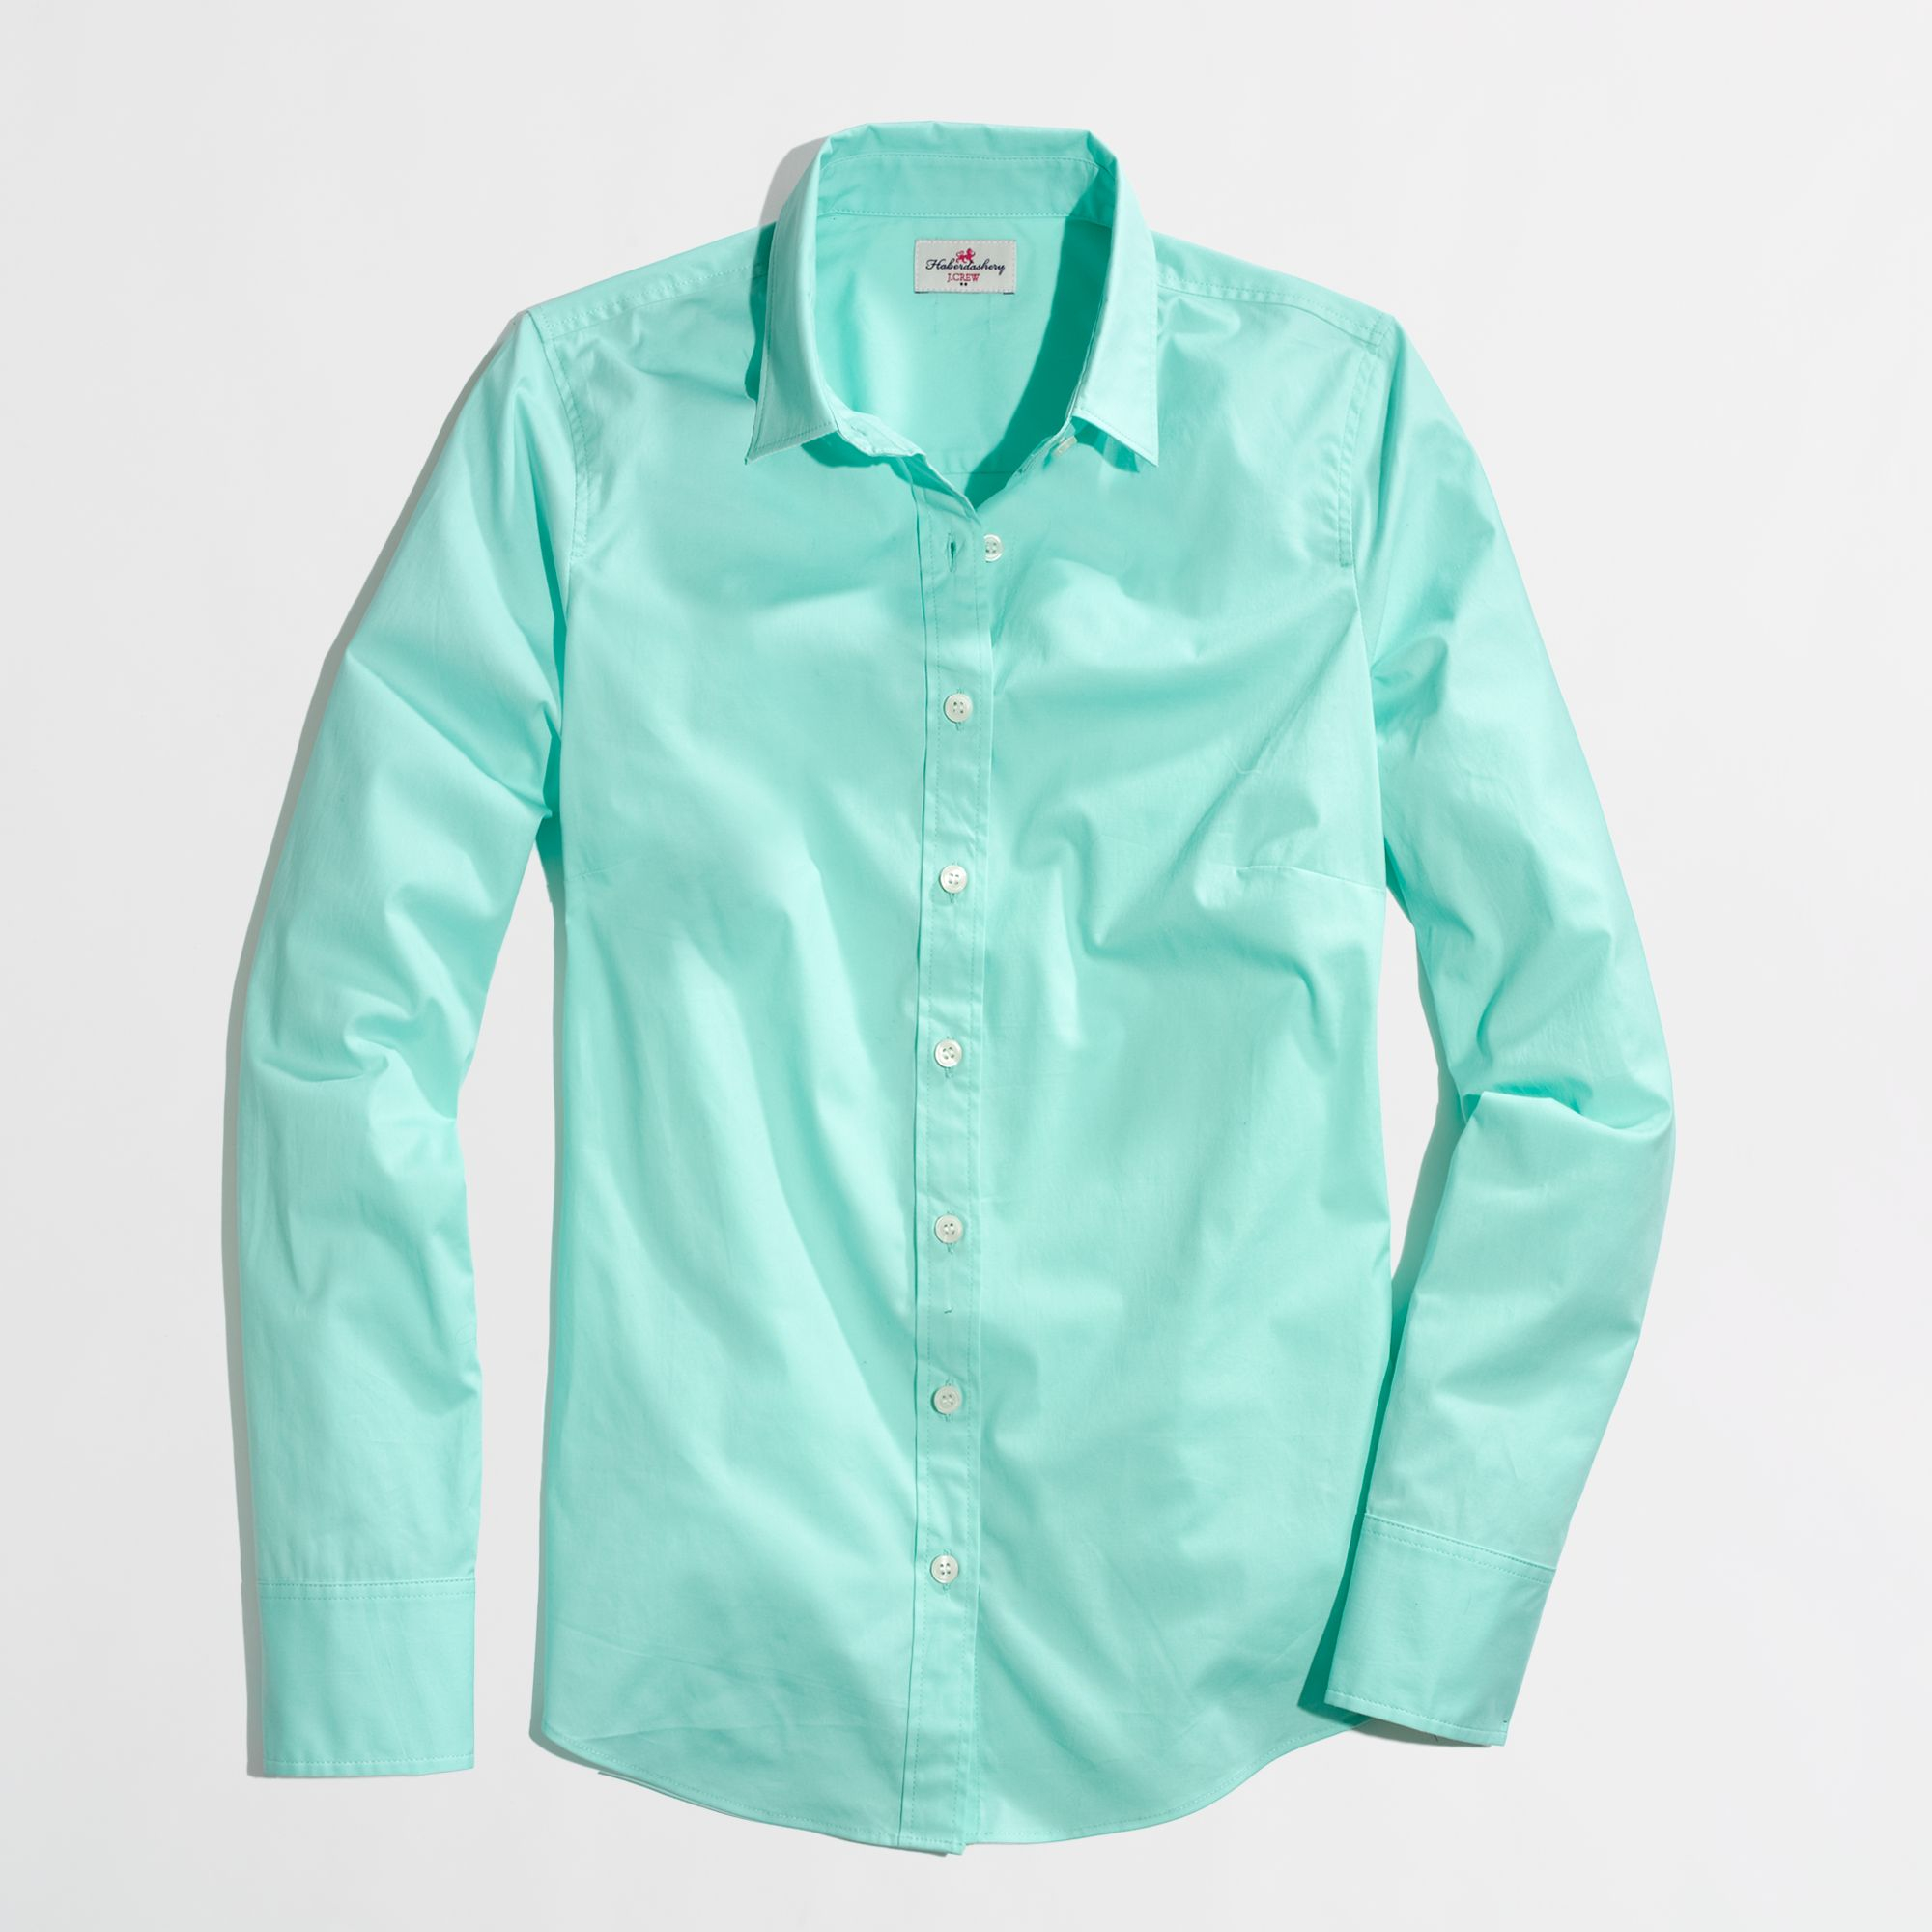 J.crew Factory Stretch Classic Buttondown Shirt in Green | Lyst